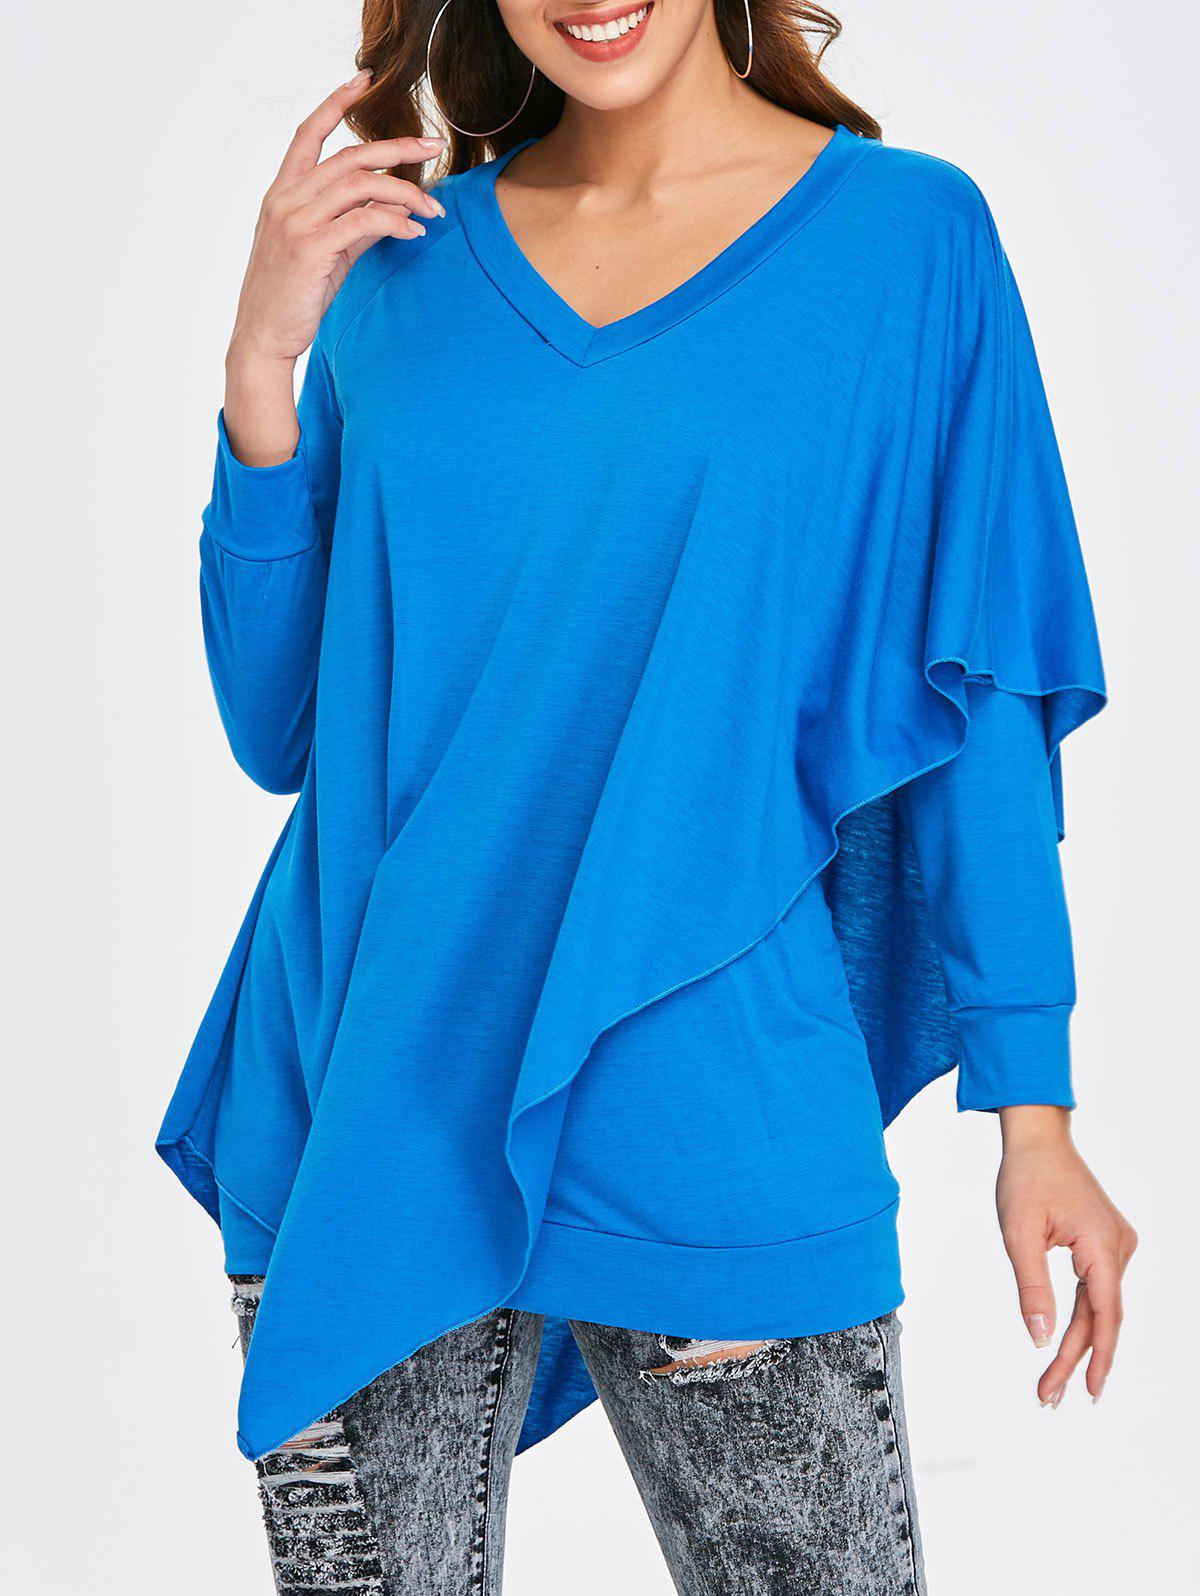 New Asymmetrical V Neck T-shirt